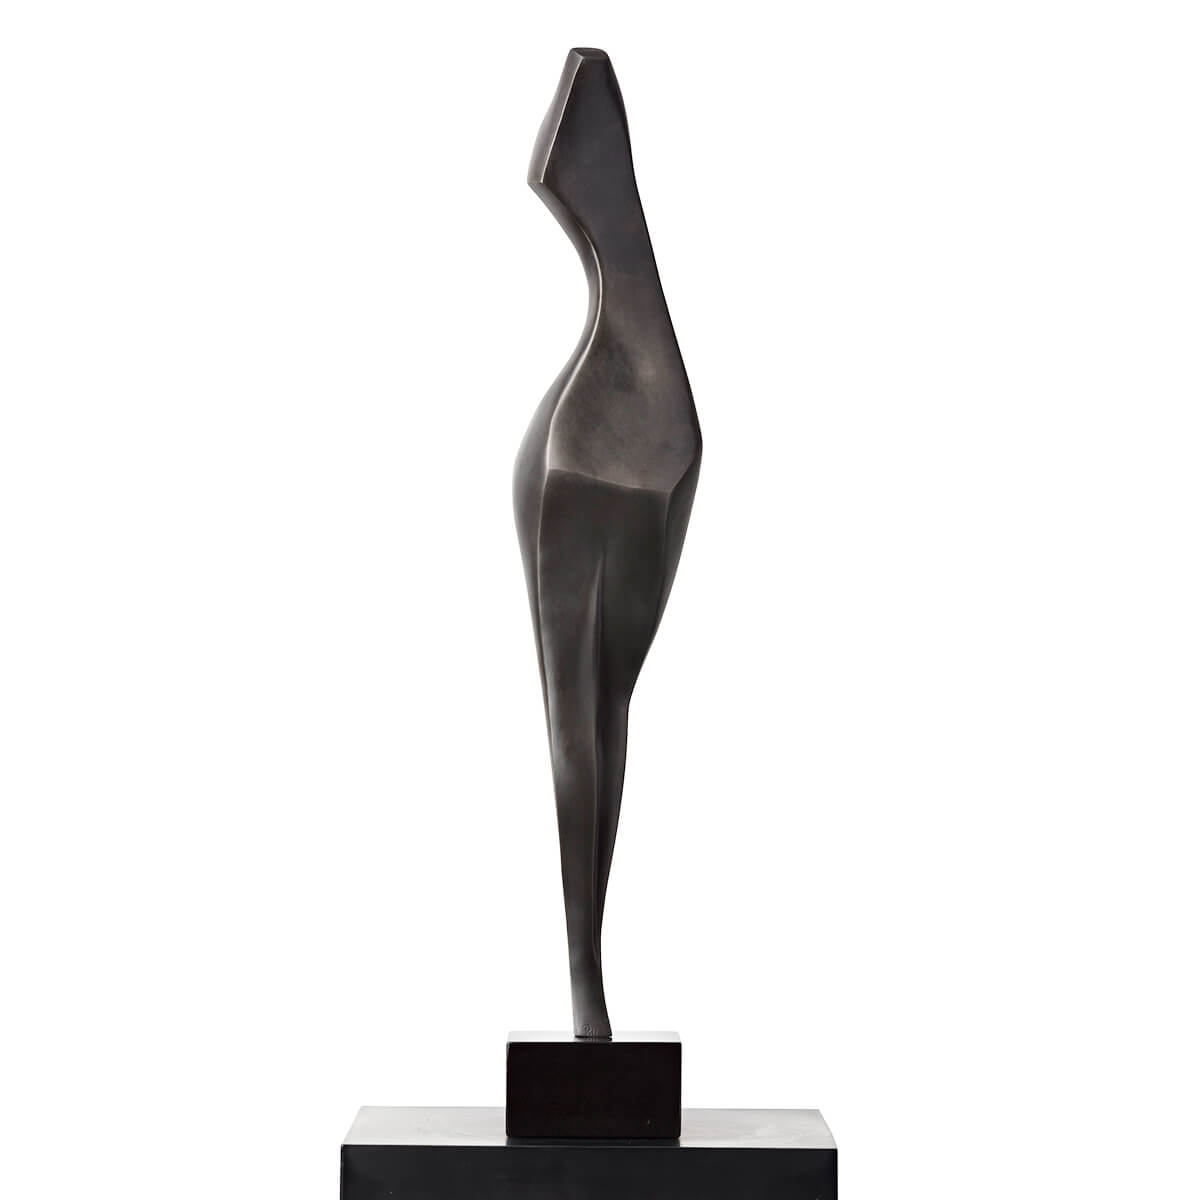 Robert-Helle-Sculpture-Gallery-Female-Mystique-1a-1200x1200